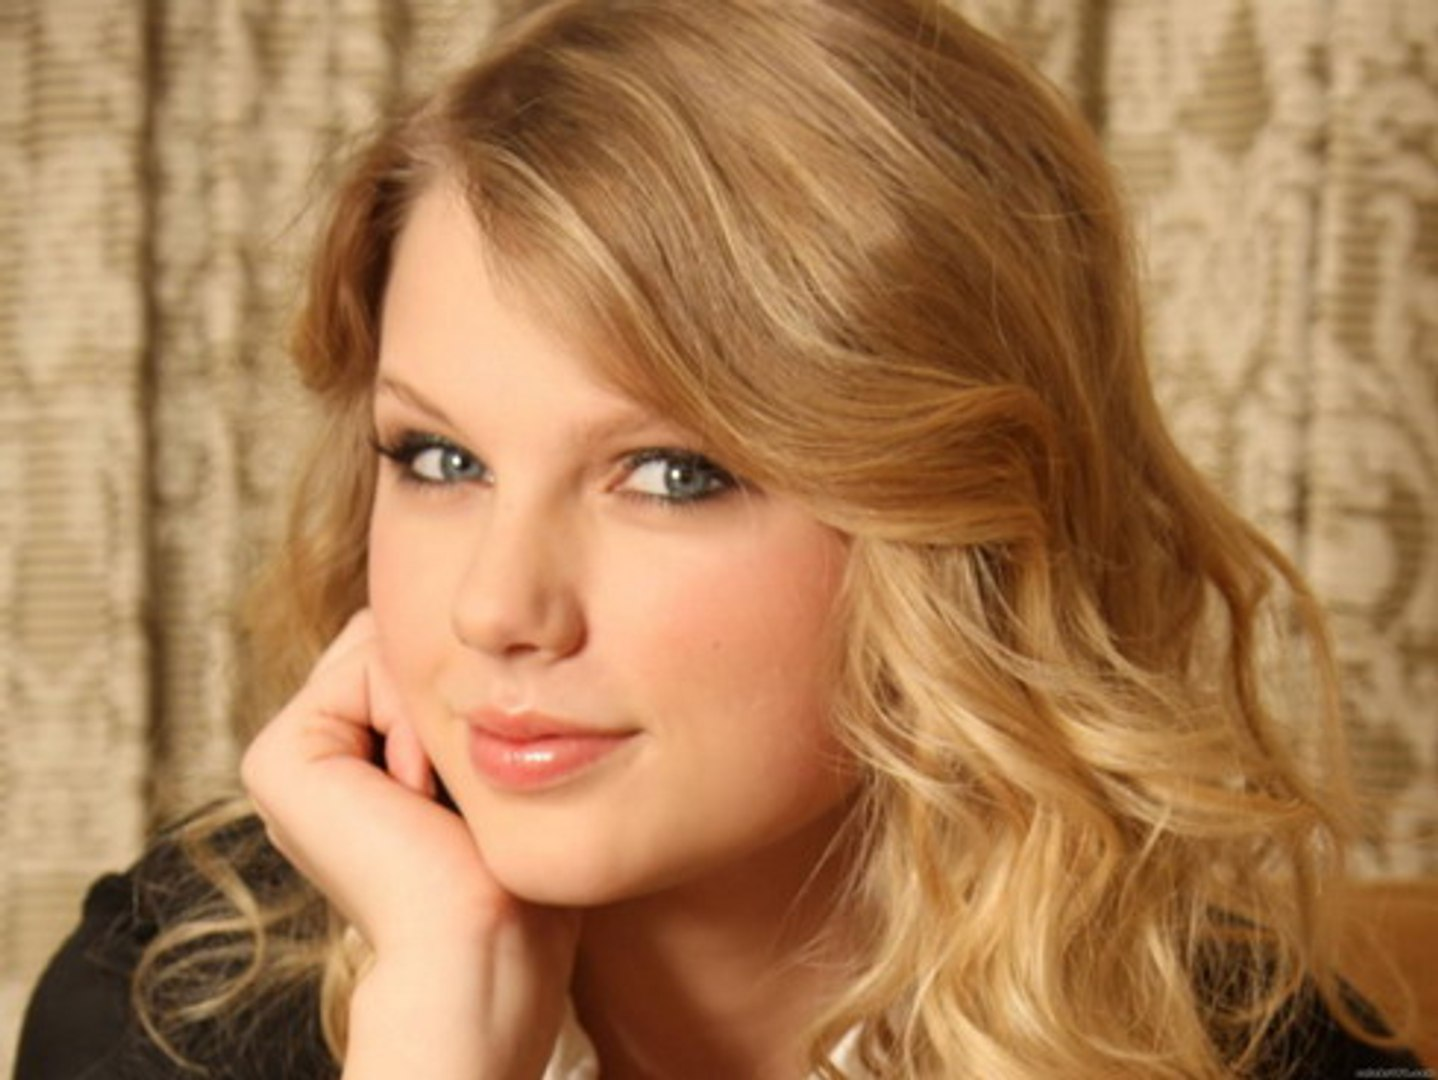 Taylor Swift Full Album 2015 - Taylor Swift's Greatest Hits 2015 Full Song #2